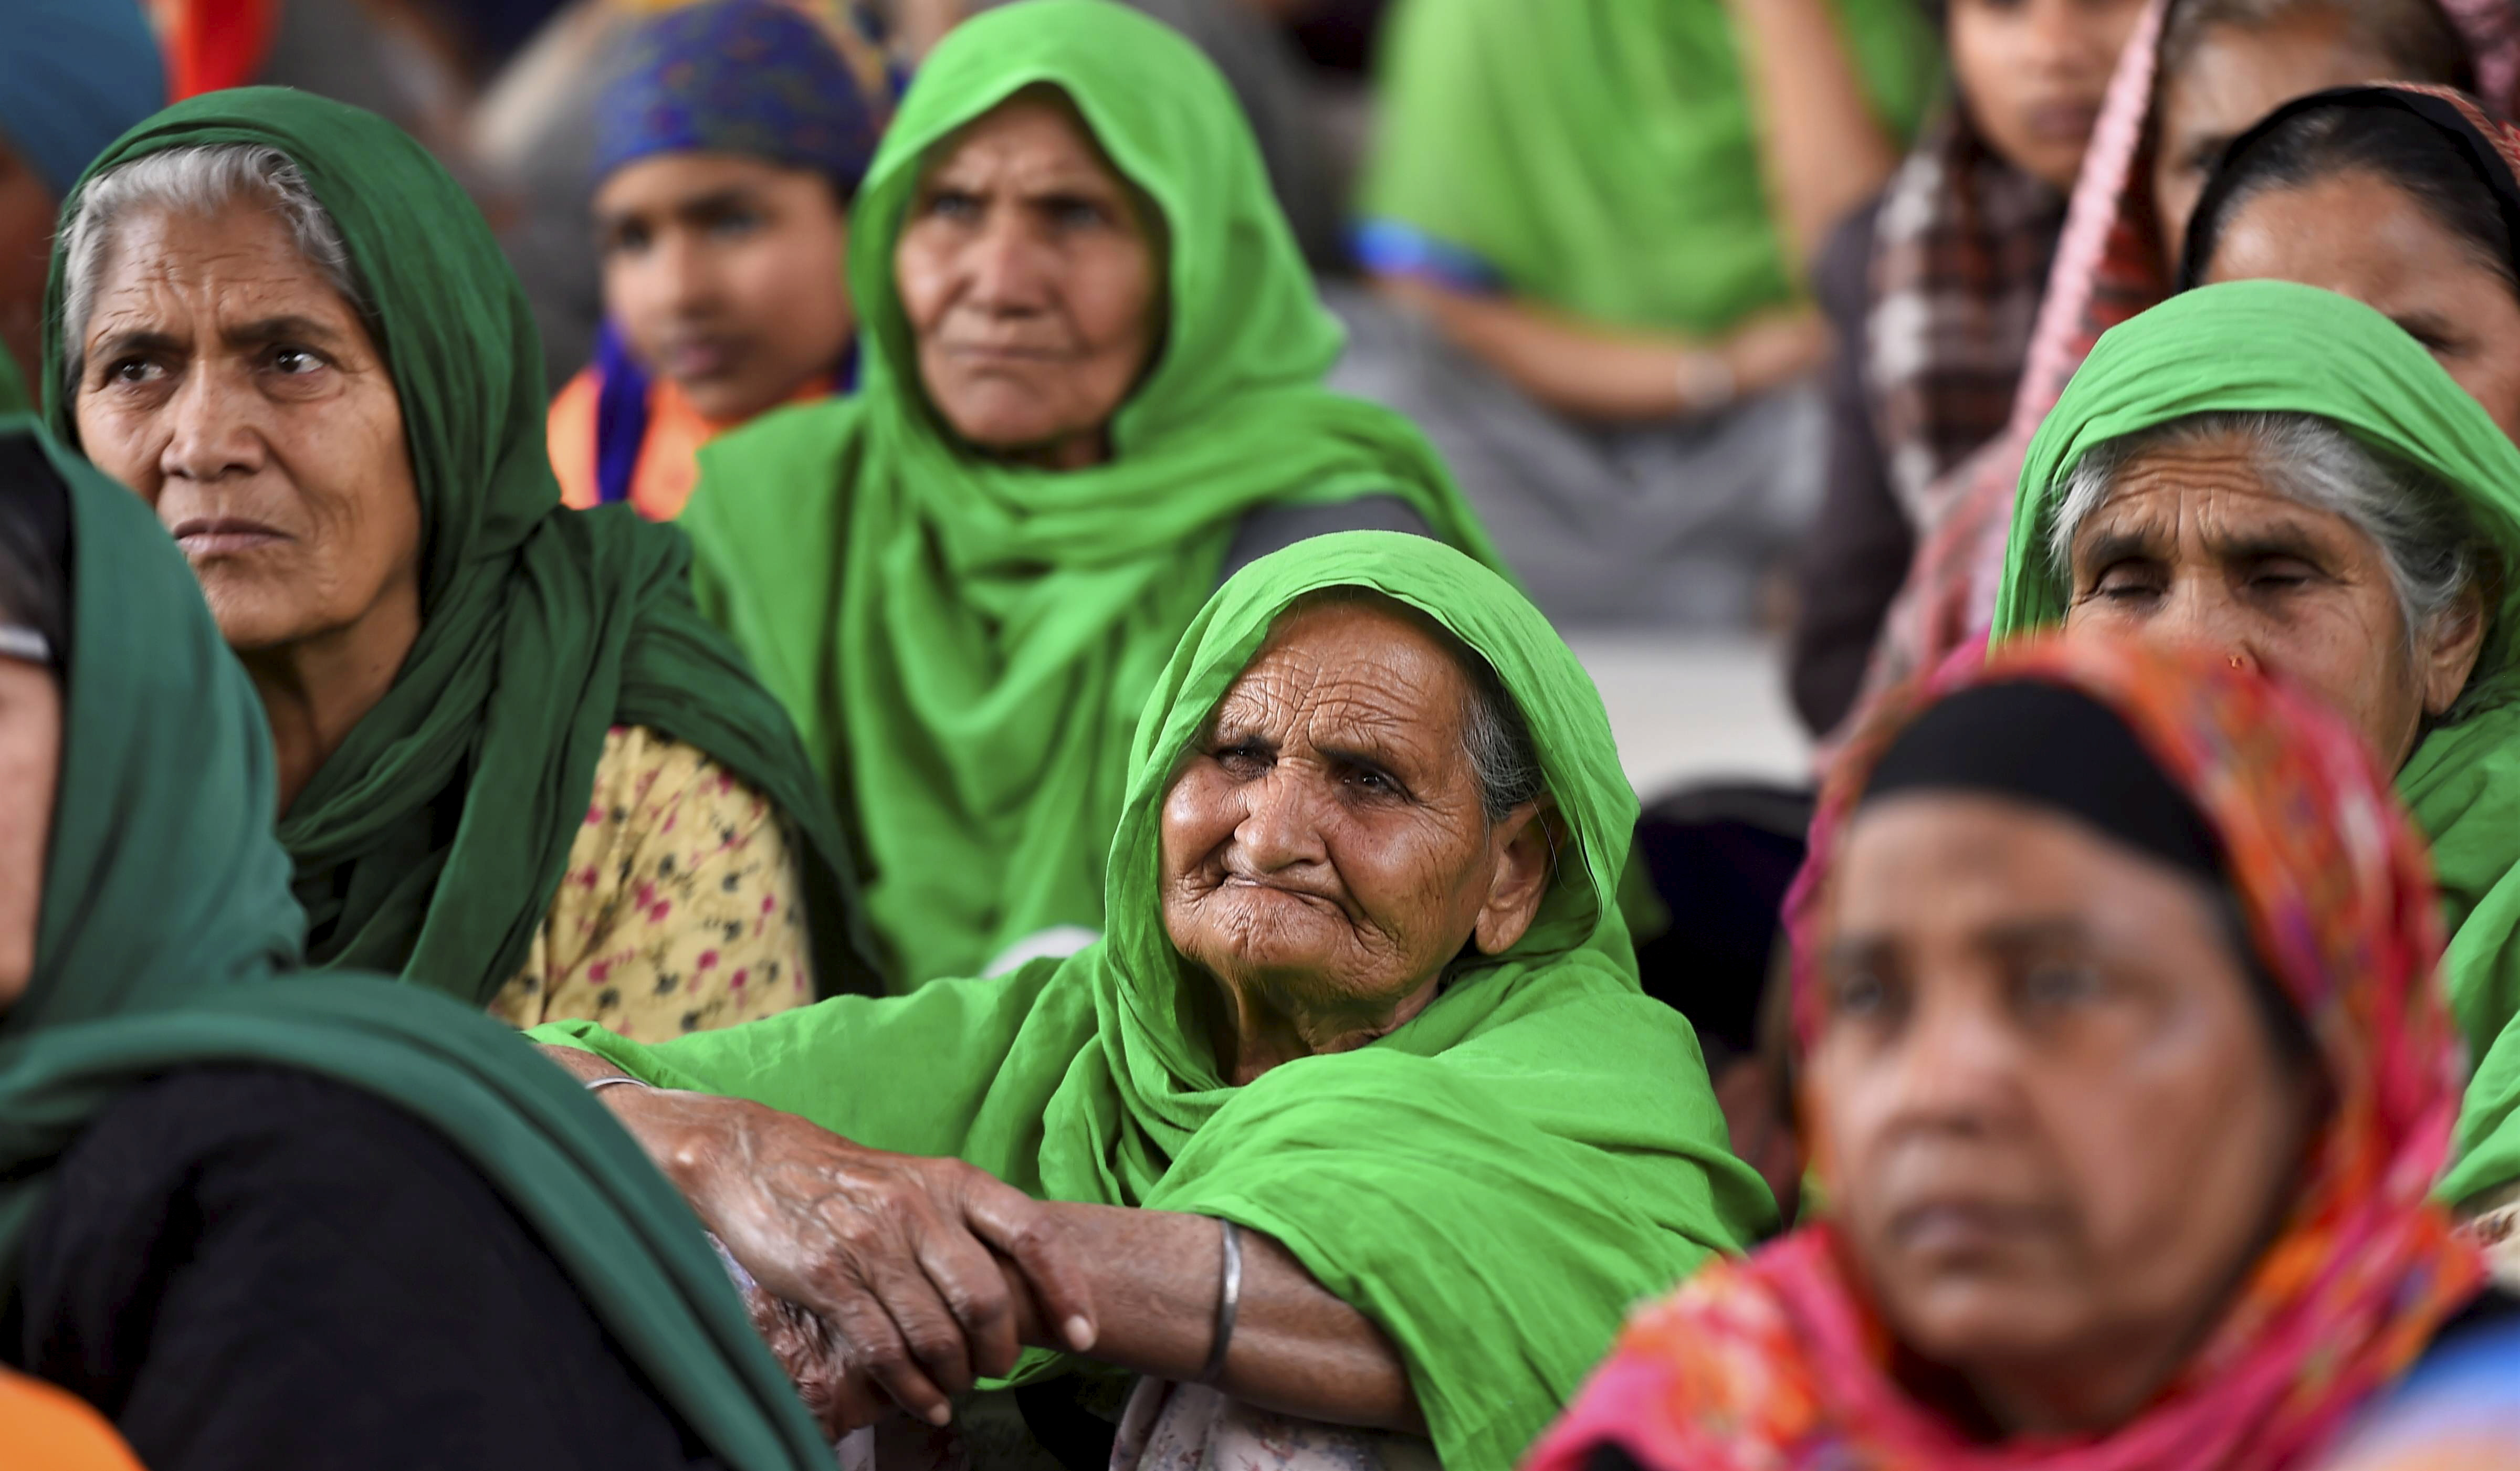 New Delhi: Women at Singhu border during farmers' ongoing protest against farm reform laws, in New Delhi, Monday, Feb. 1, 2021. (PTI Photo/Kamal Singh)(PTI02_01_2021_000195B)